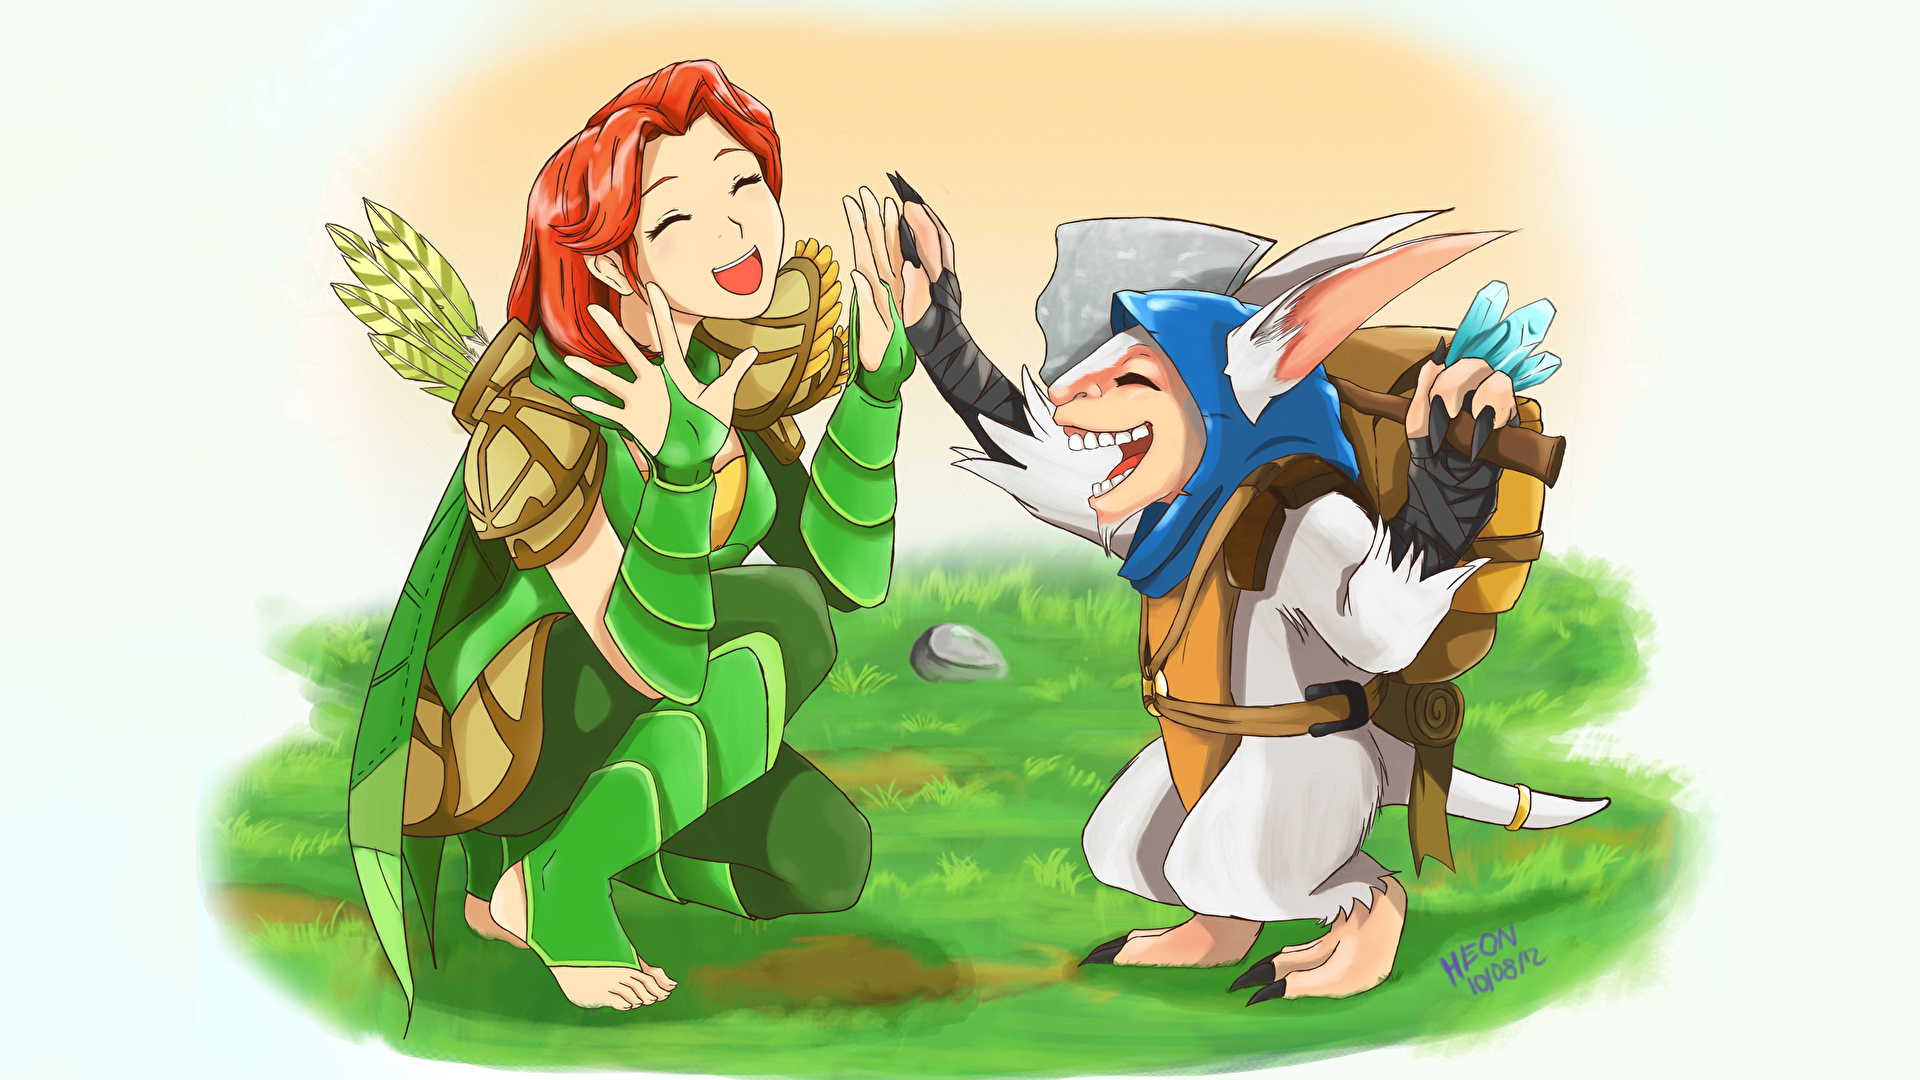 Photos DOTA 2 Meepo Windrunner Archers Elves Girls Fantasy 1920x1080.